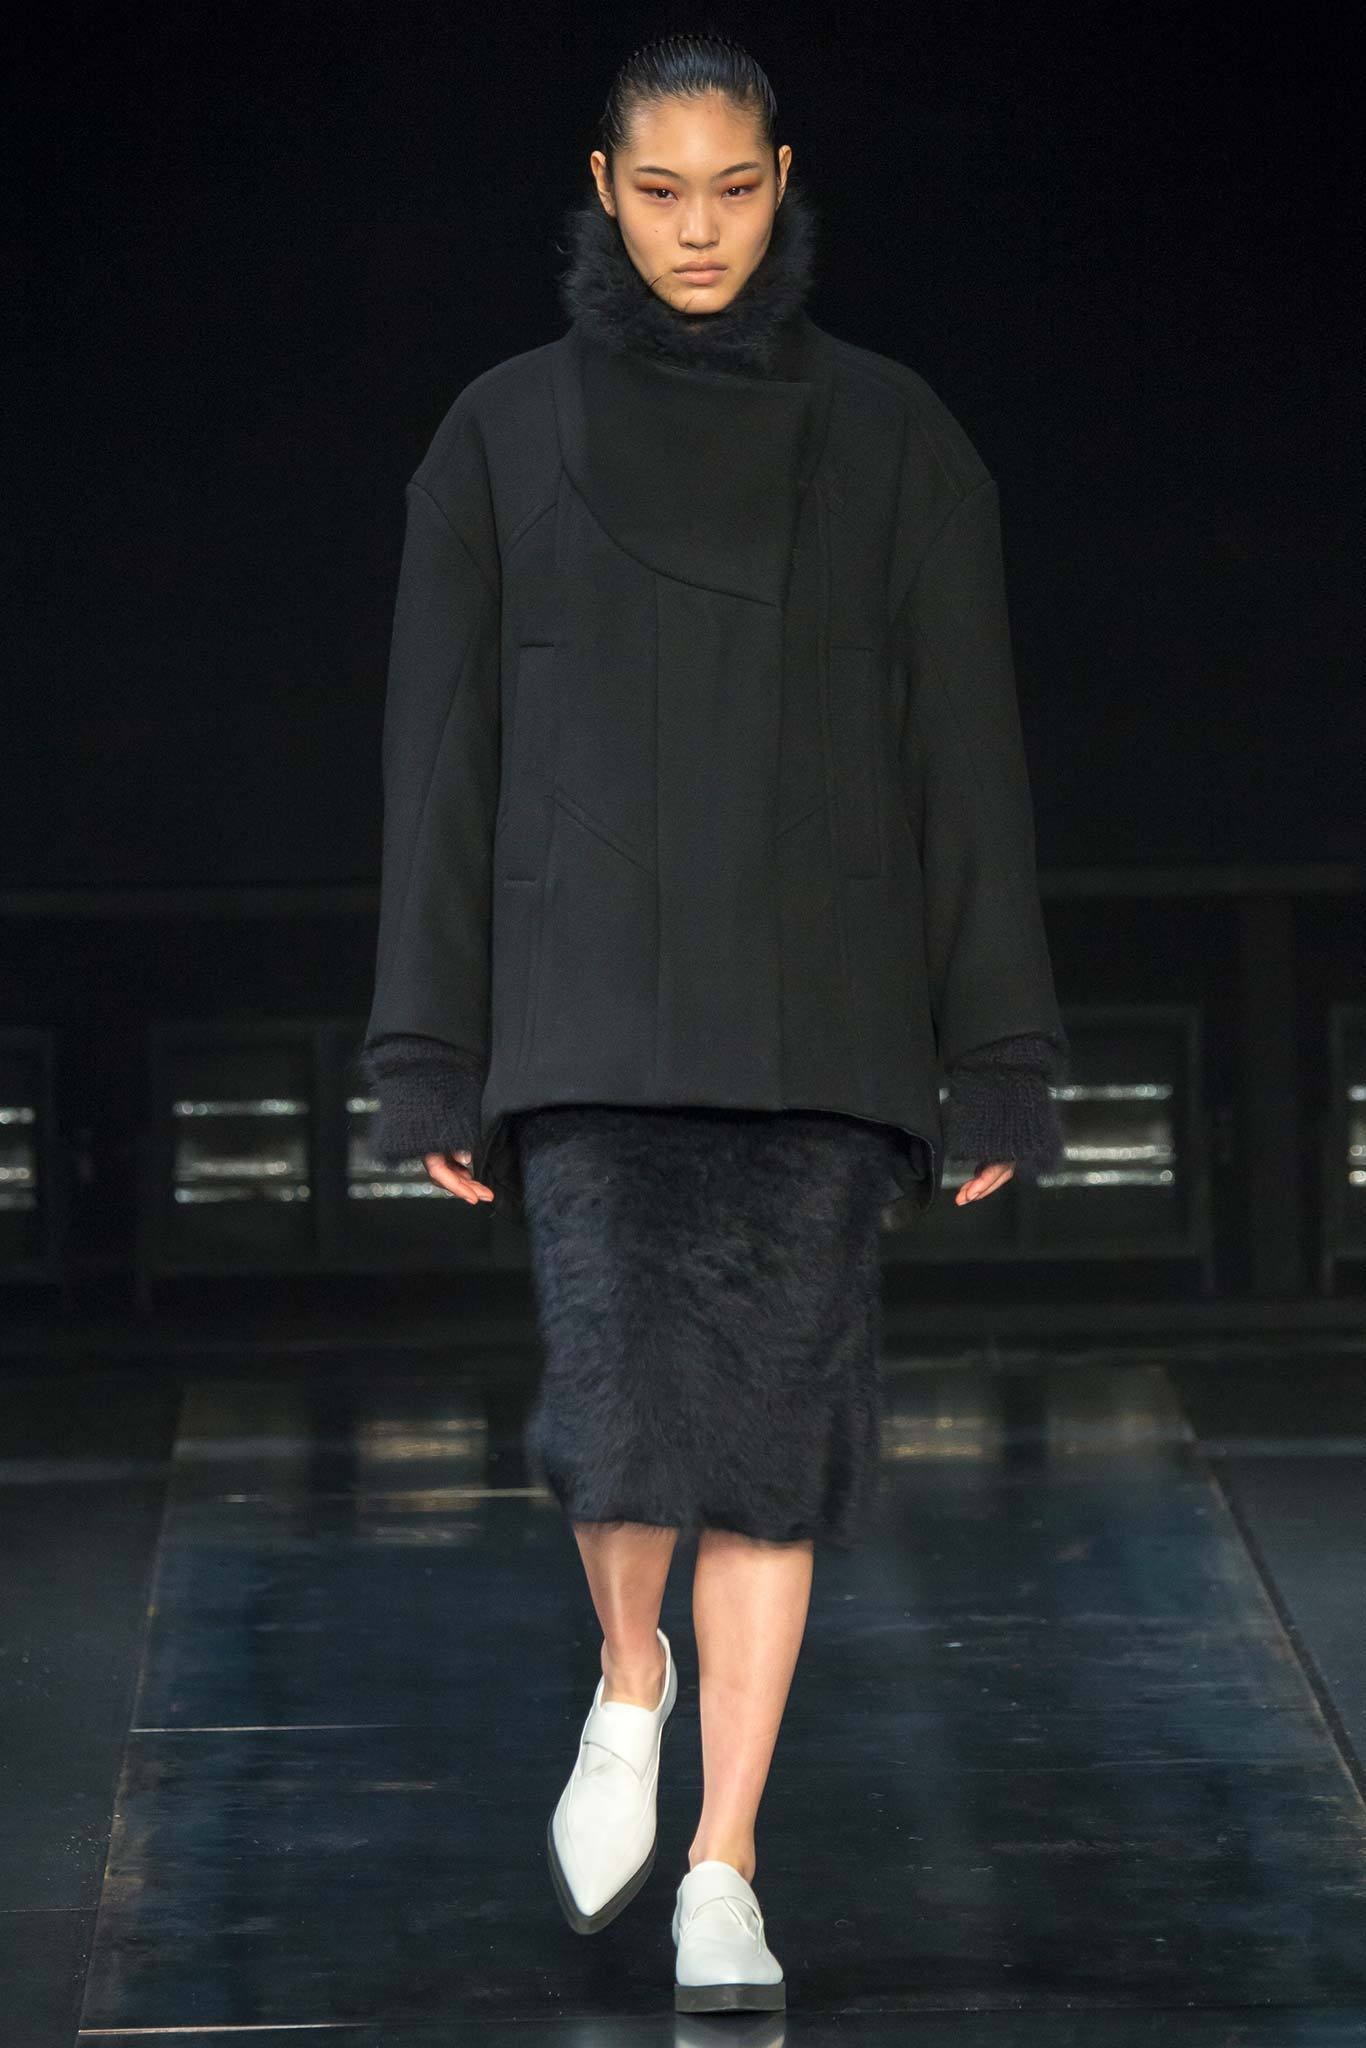 StyleAndMinimalism | Collection Best Bits | What To Wear From AW14 | Helmut Lang AW14 | Black Funnel Neck Oversized Coat, Black Mohair Pencil Skirt